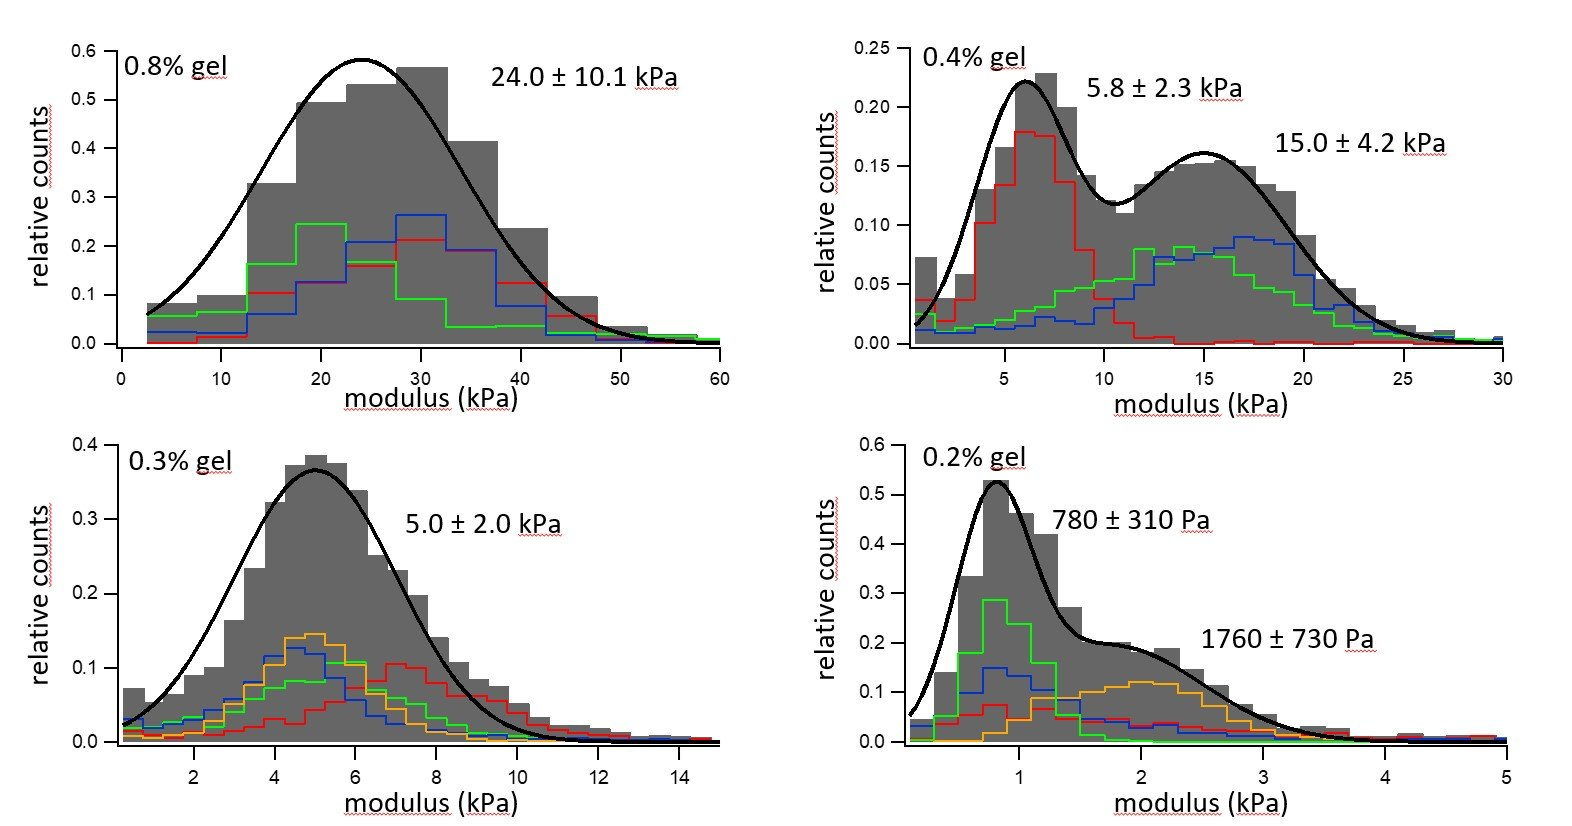 Figure 5. Elastic modulus distribution of four hydrogels with different concentrations of gelatine.